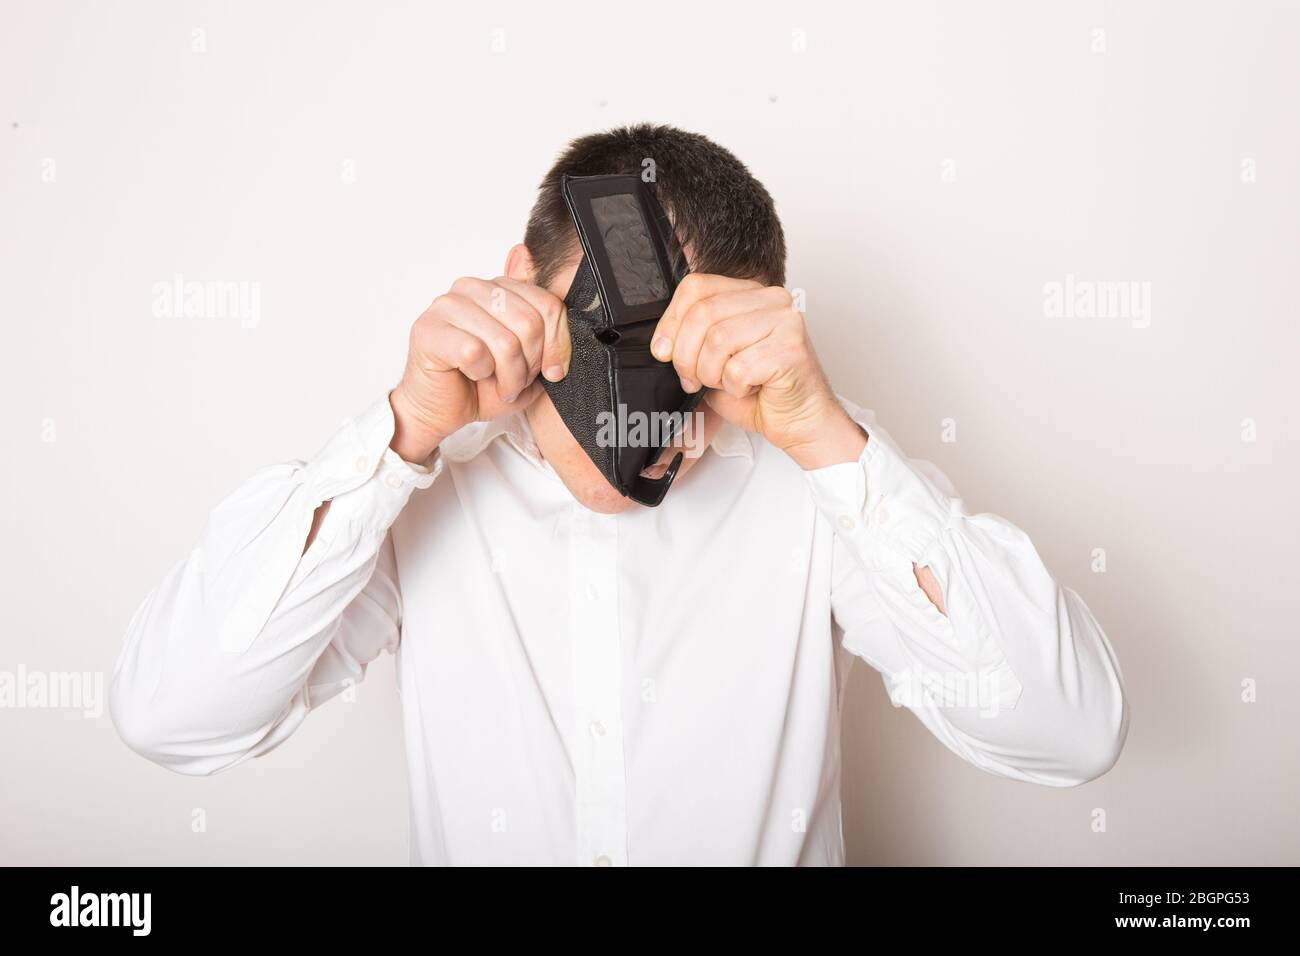 Bankruptcy - Business Person holding an empty wallet. Man showing  the inconsistency and lack of money and not able to pay the loan and the mortgage. Stock Photo